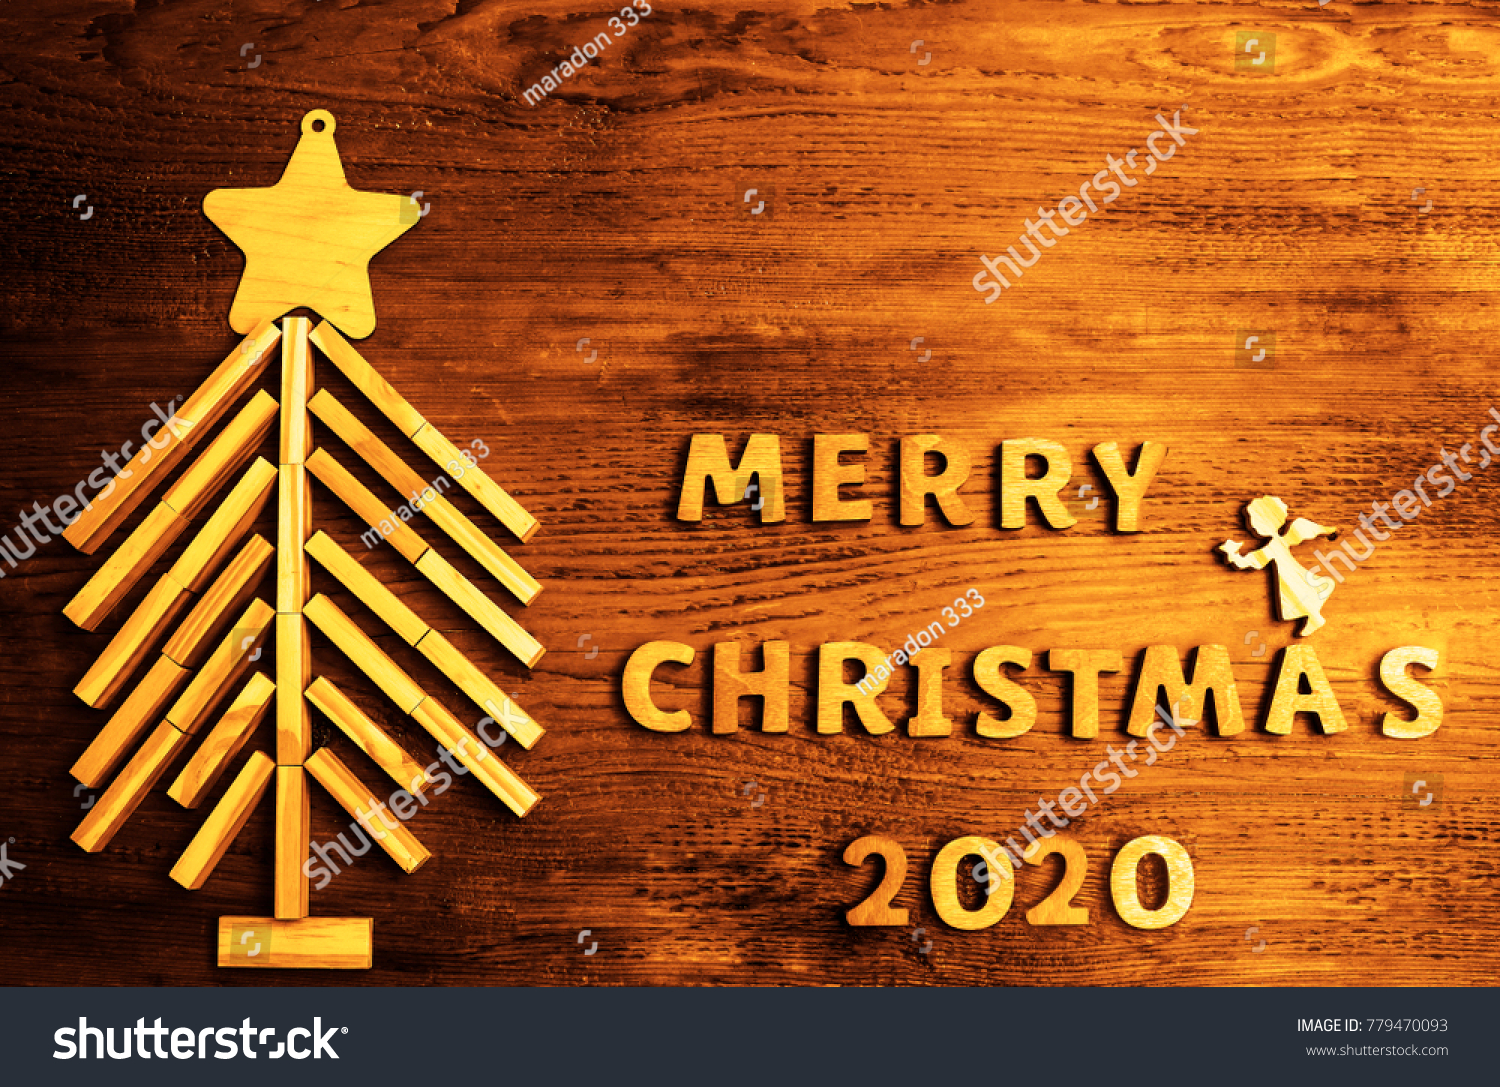 2020 happy new year driftwood wooden christmas tree made frome many wood blocks and merry - Merry Christmas Decorative Blocks